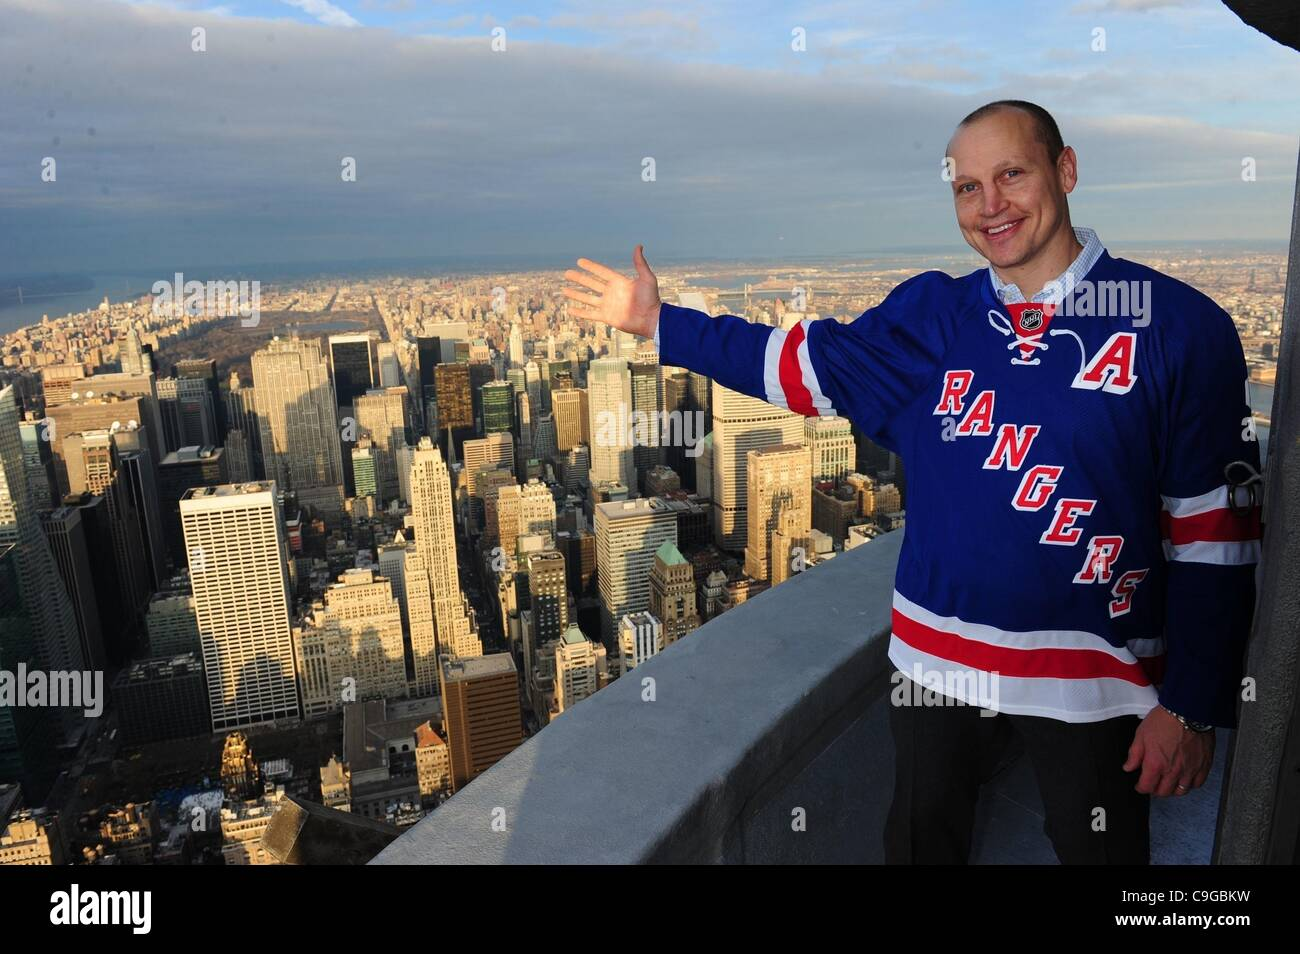 22. Dezember 2011 - Manhattan, New York, USA - NHL-Alumnus und New York Ranger ADAM GRAVES. Das Empire State Building Stockbild